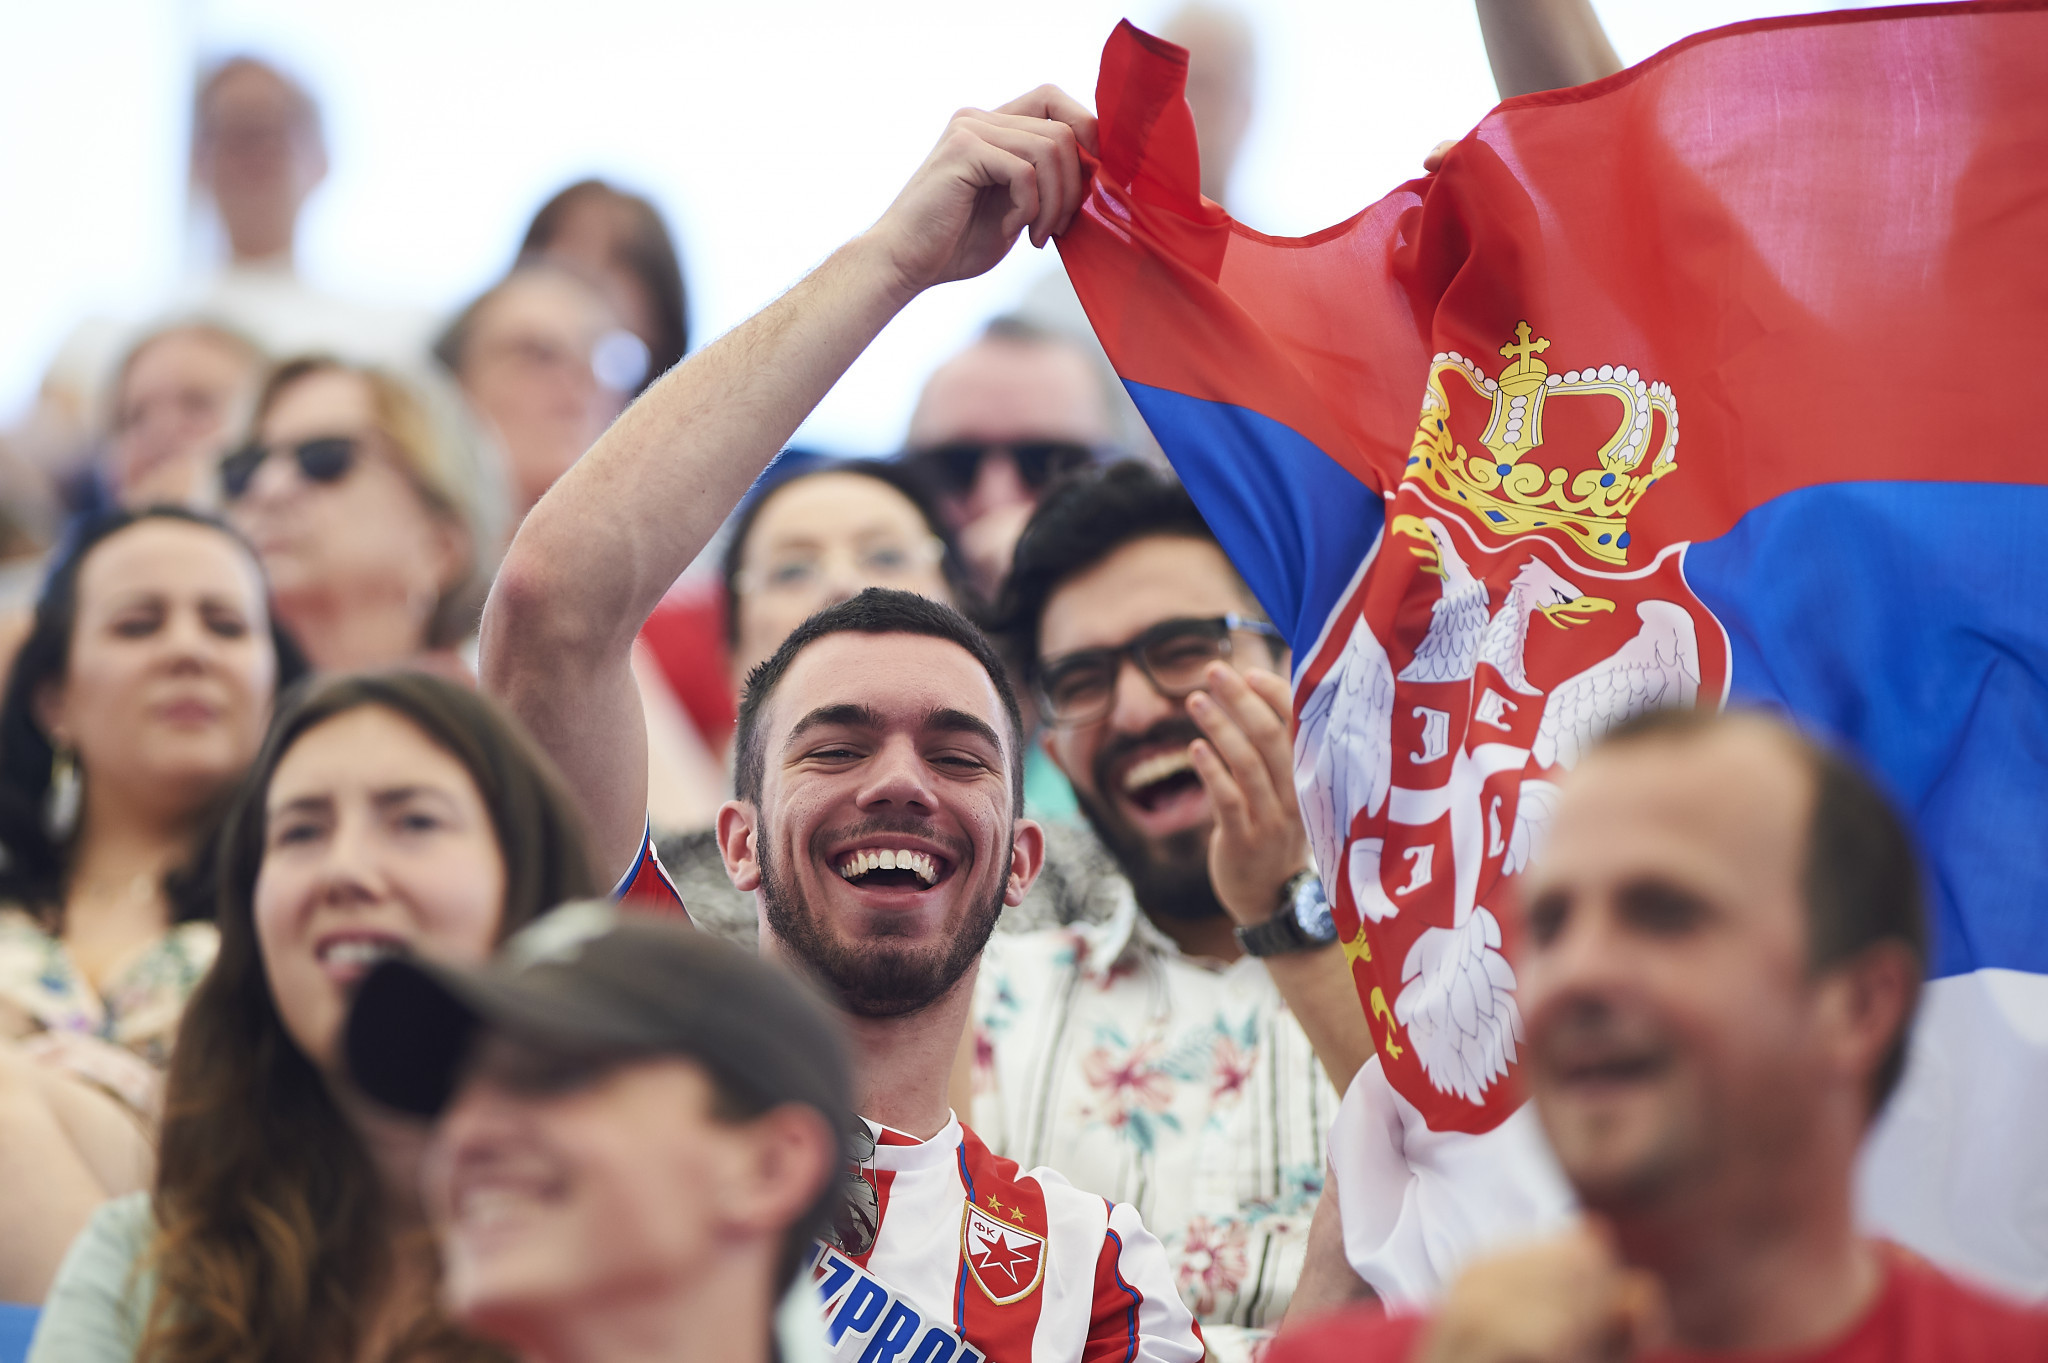 A decisive win by world number two Novak Djokovic brought joy to Serbian fans ©Getty Images